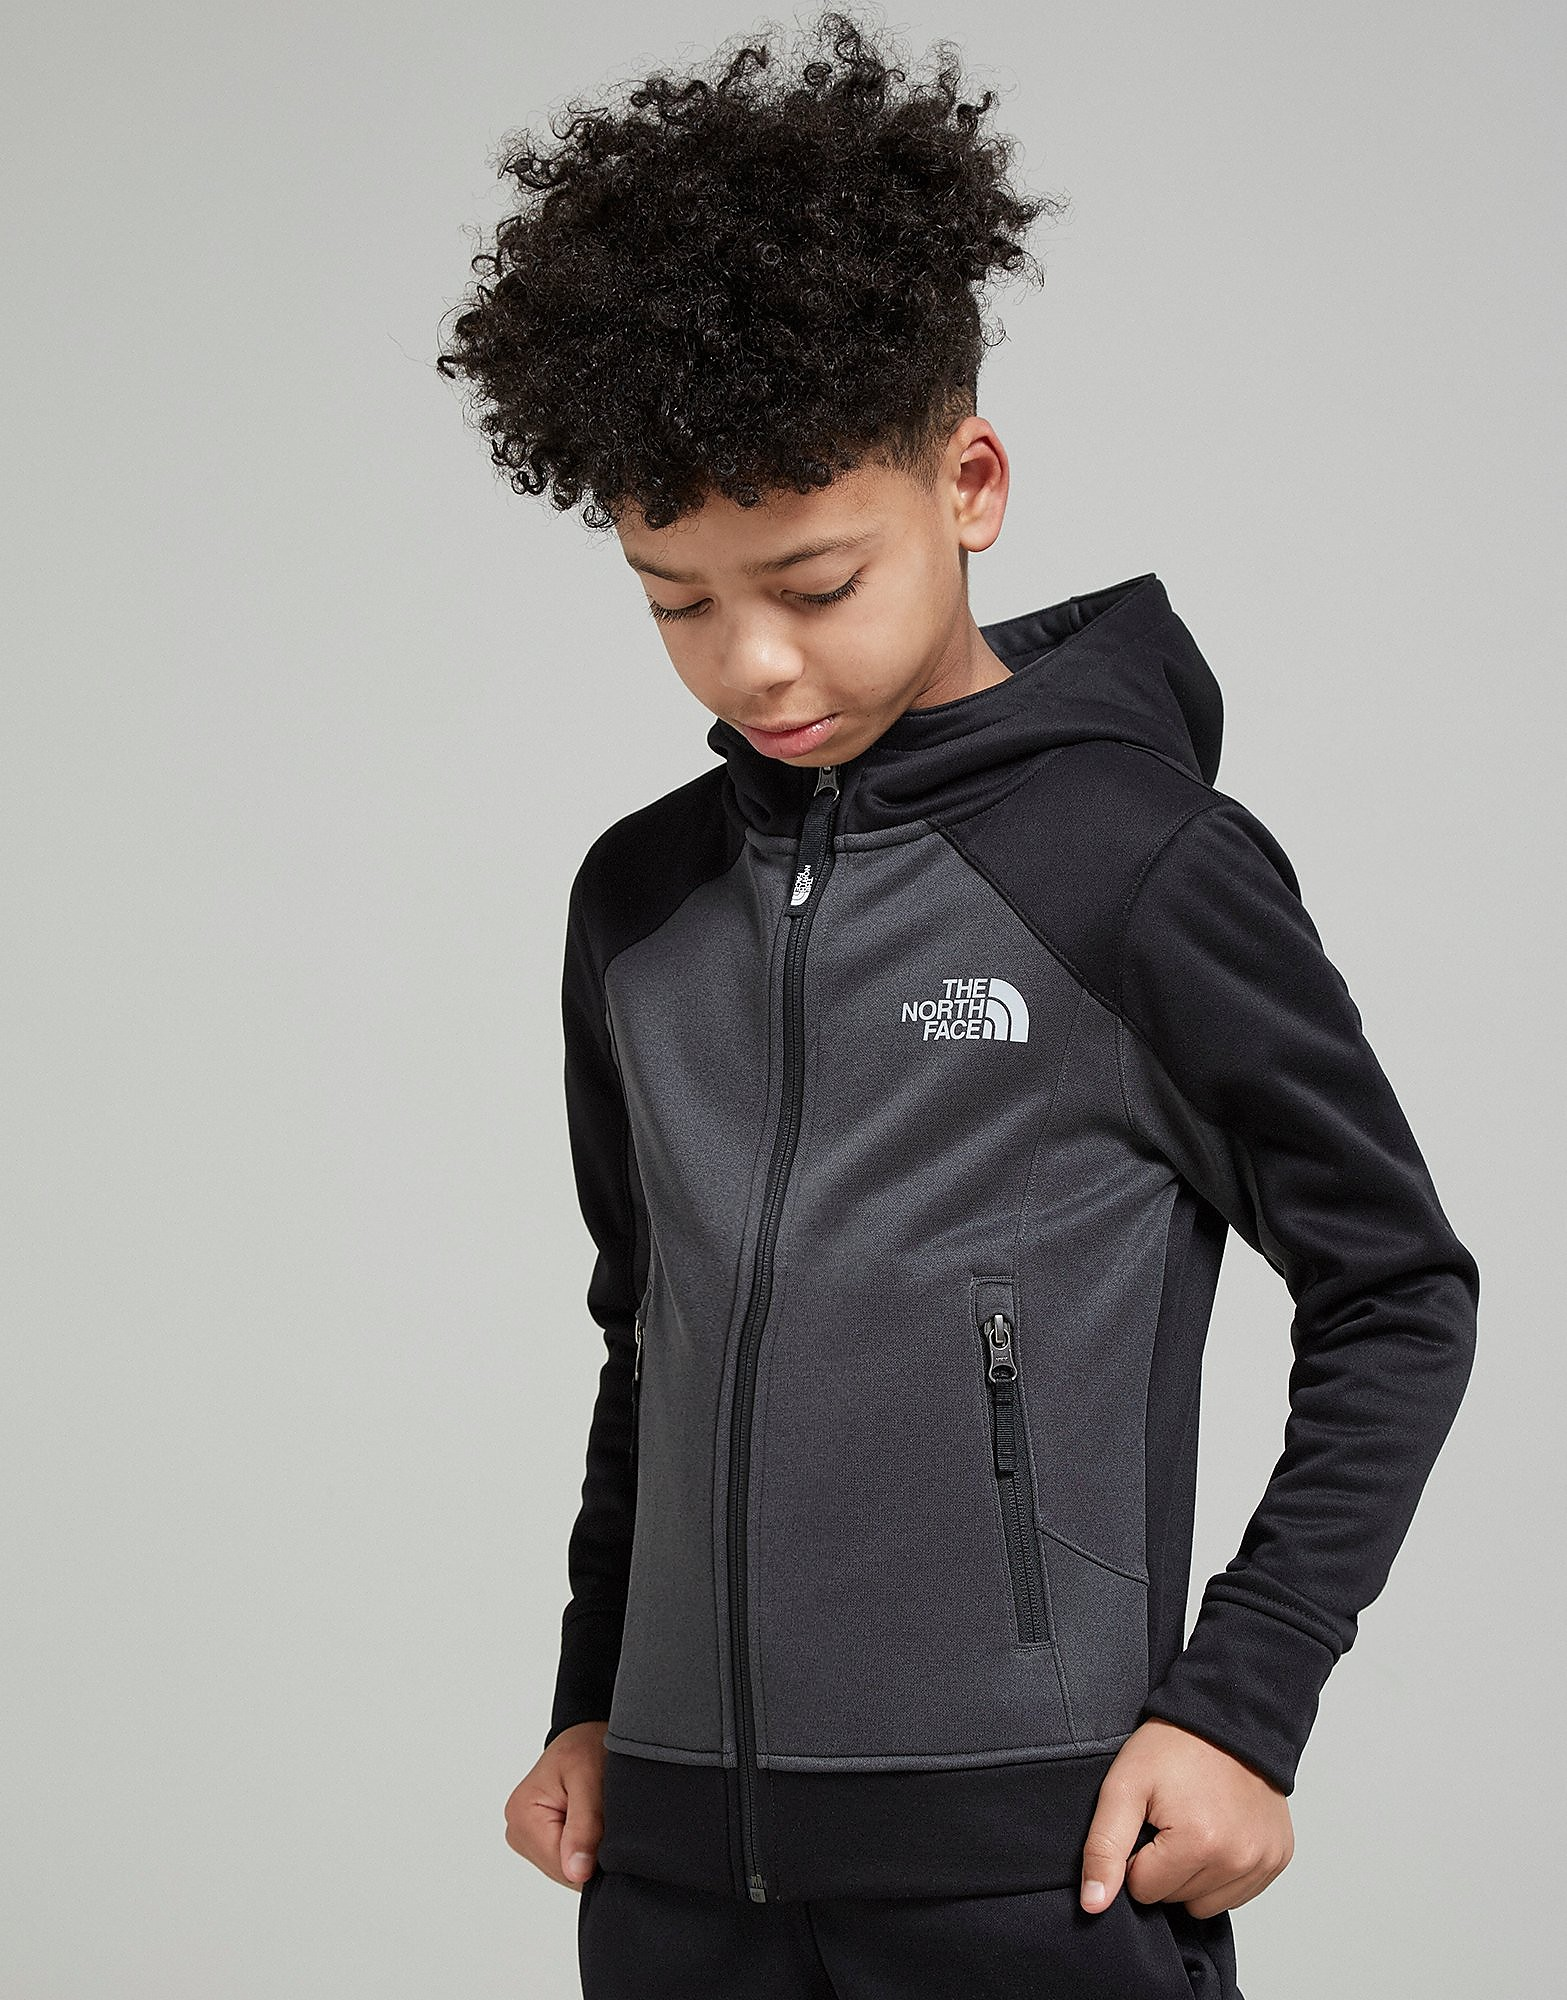 The North Face chaqueta Mittelegi Full Zip júnior